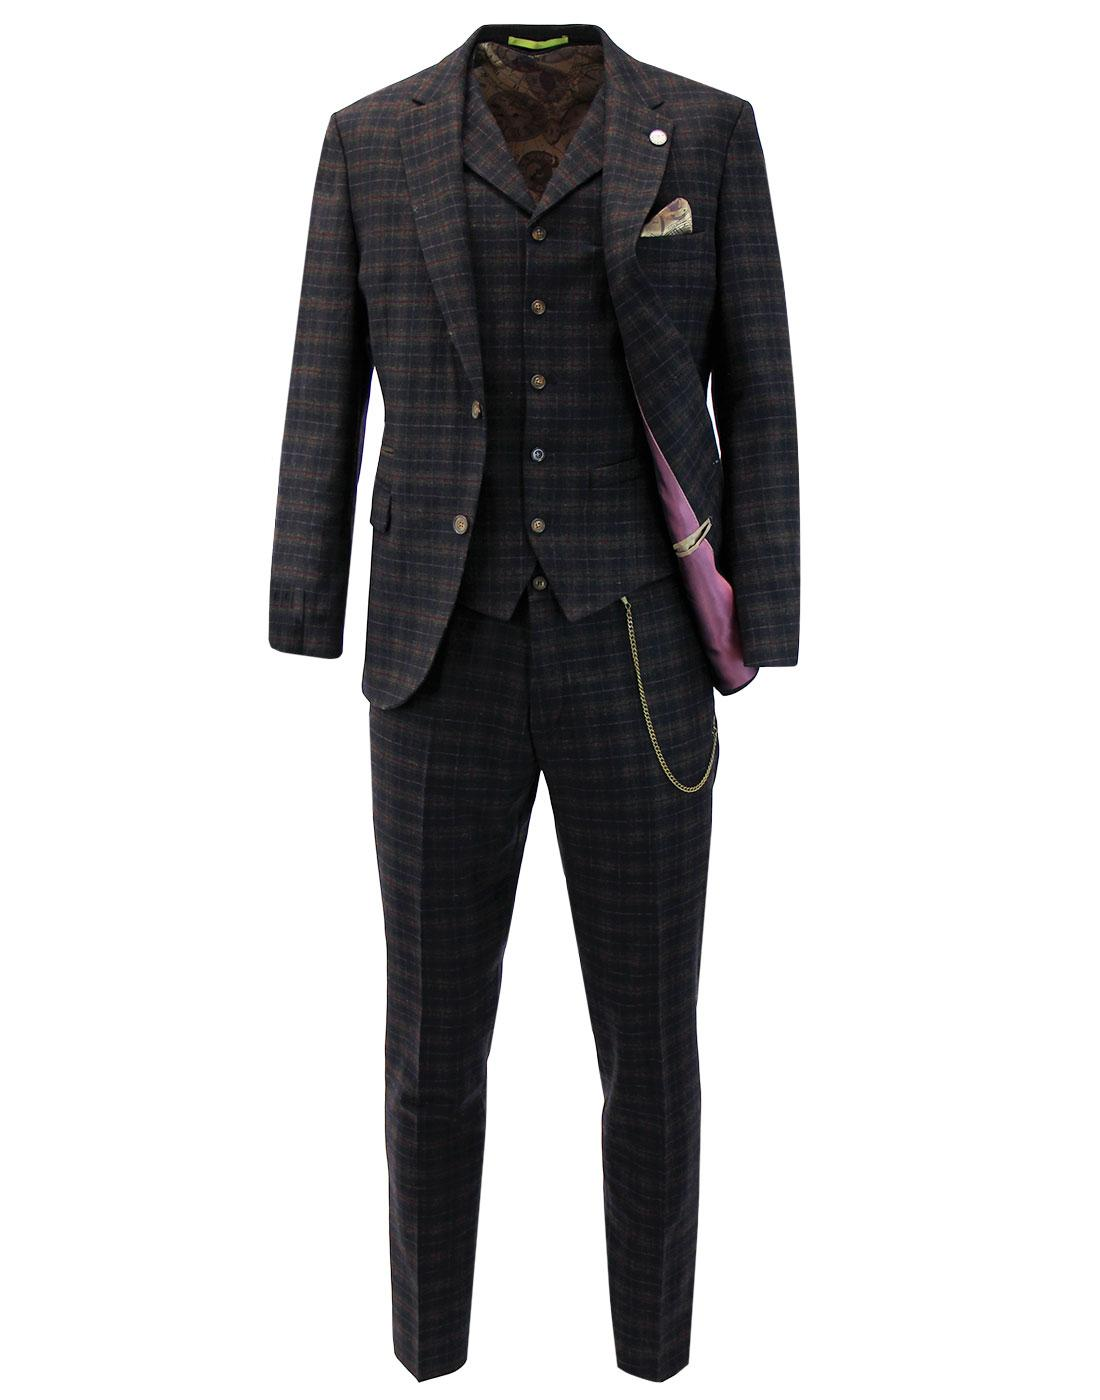 Towergate GIBSON LONDON Tartan 2 or 3 Piece Suit